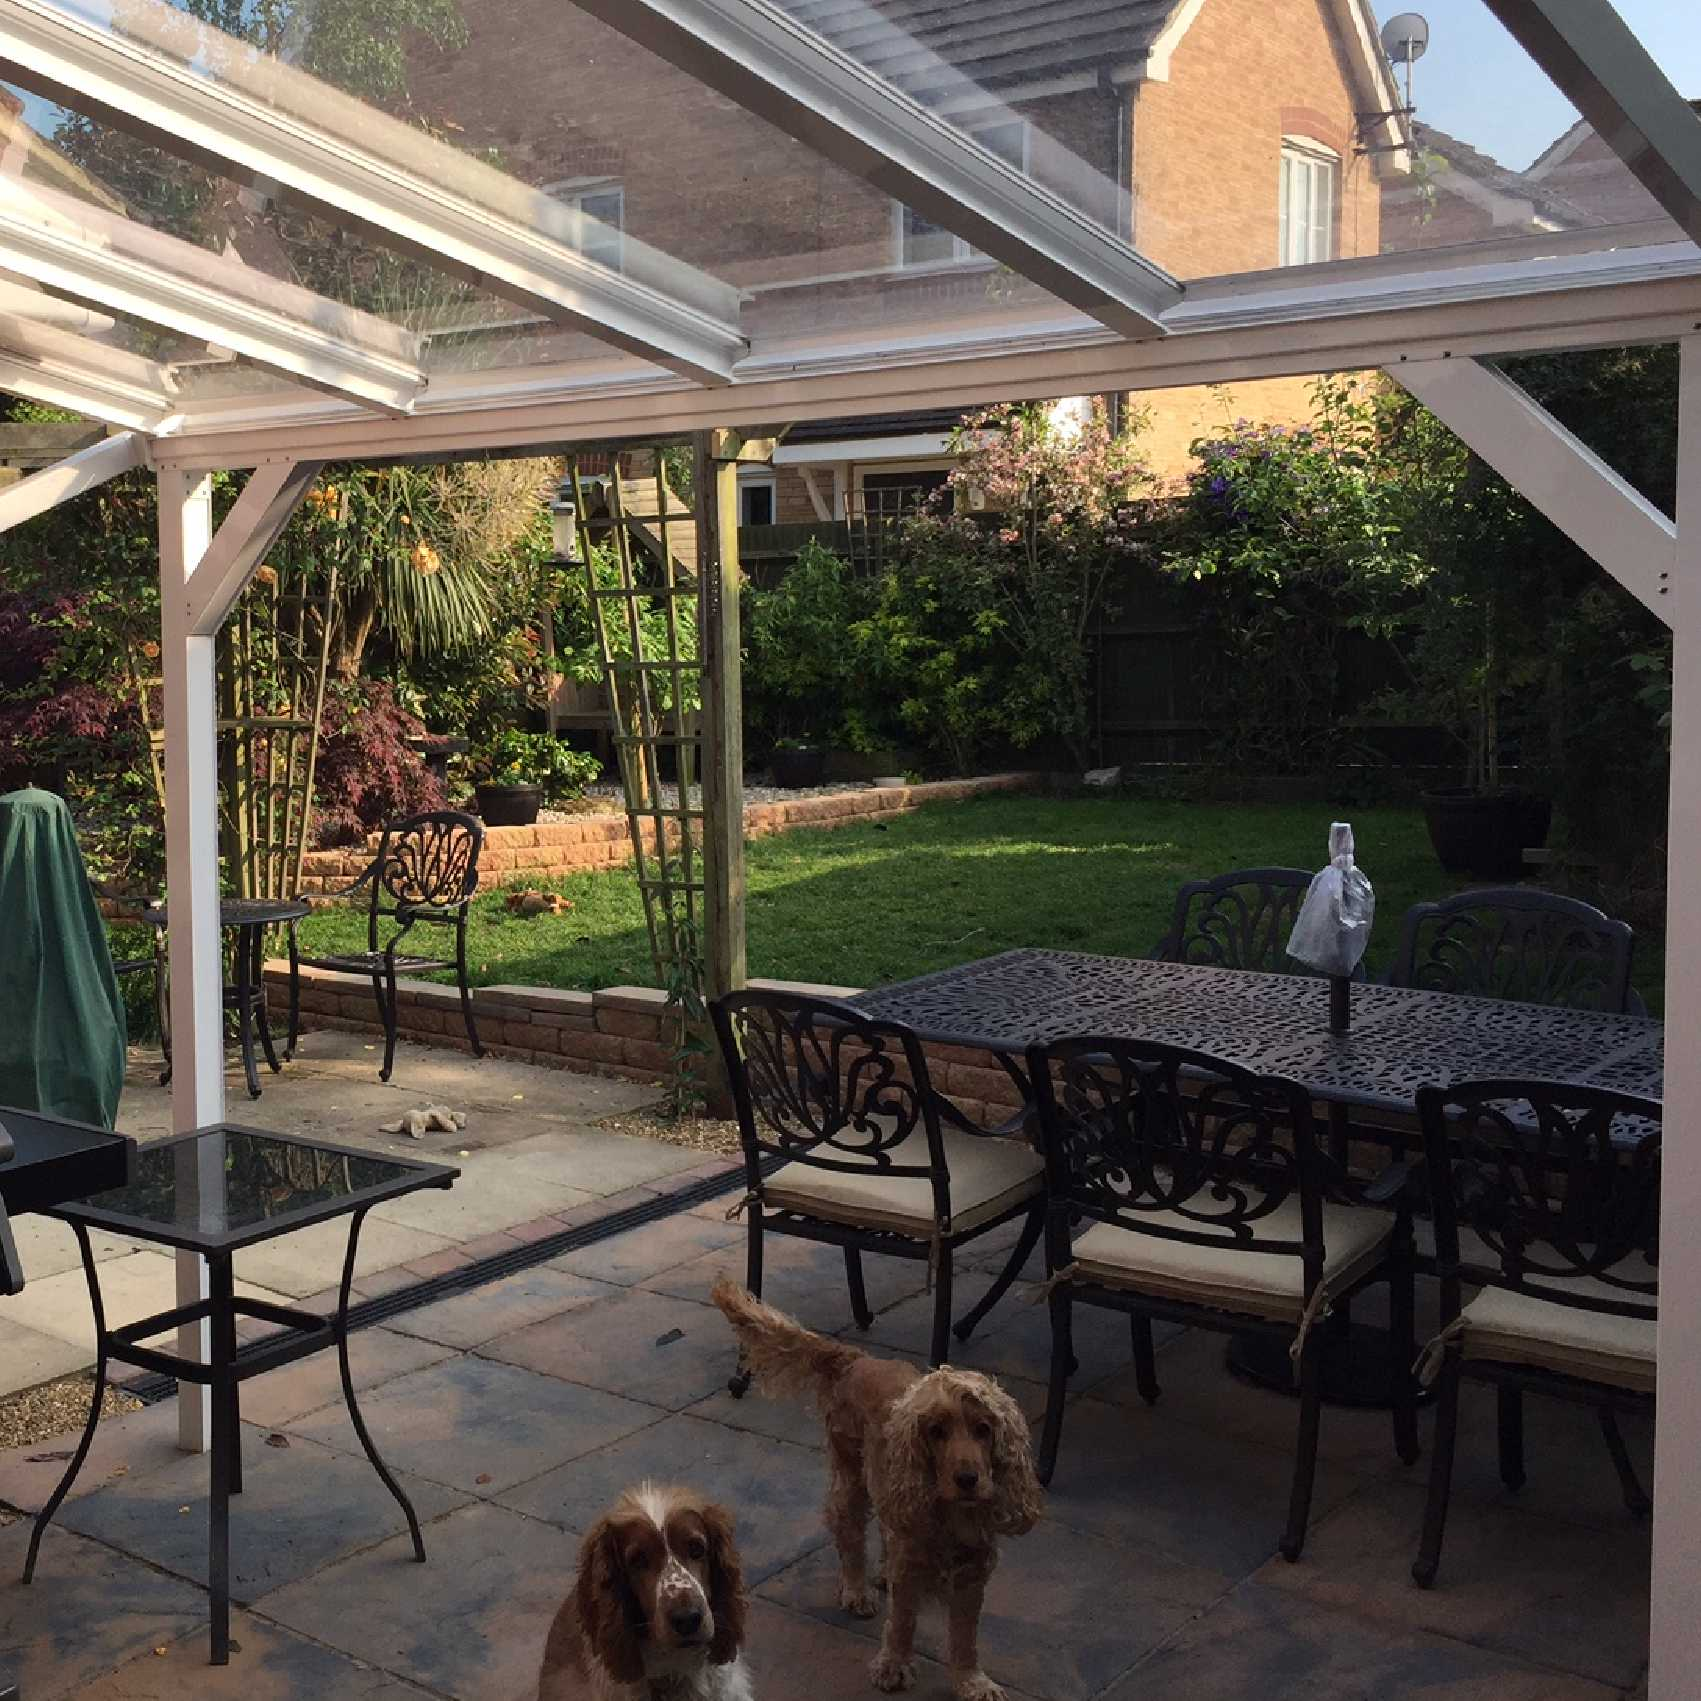 Affordable Omega Smart Lean-To Canopy with 6mm Glass Clear Plate Polycarbonate Glazing - 10.5m (W) x 2.0m (P), (5) Supporting Posts